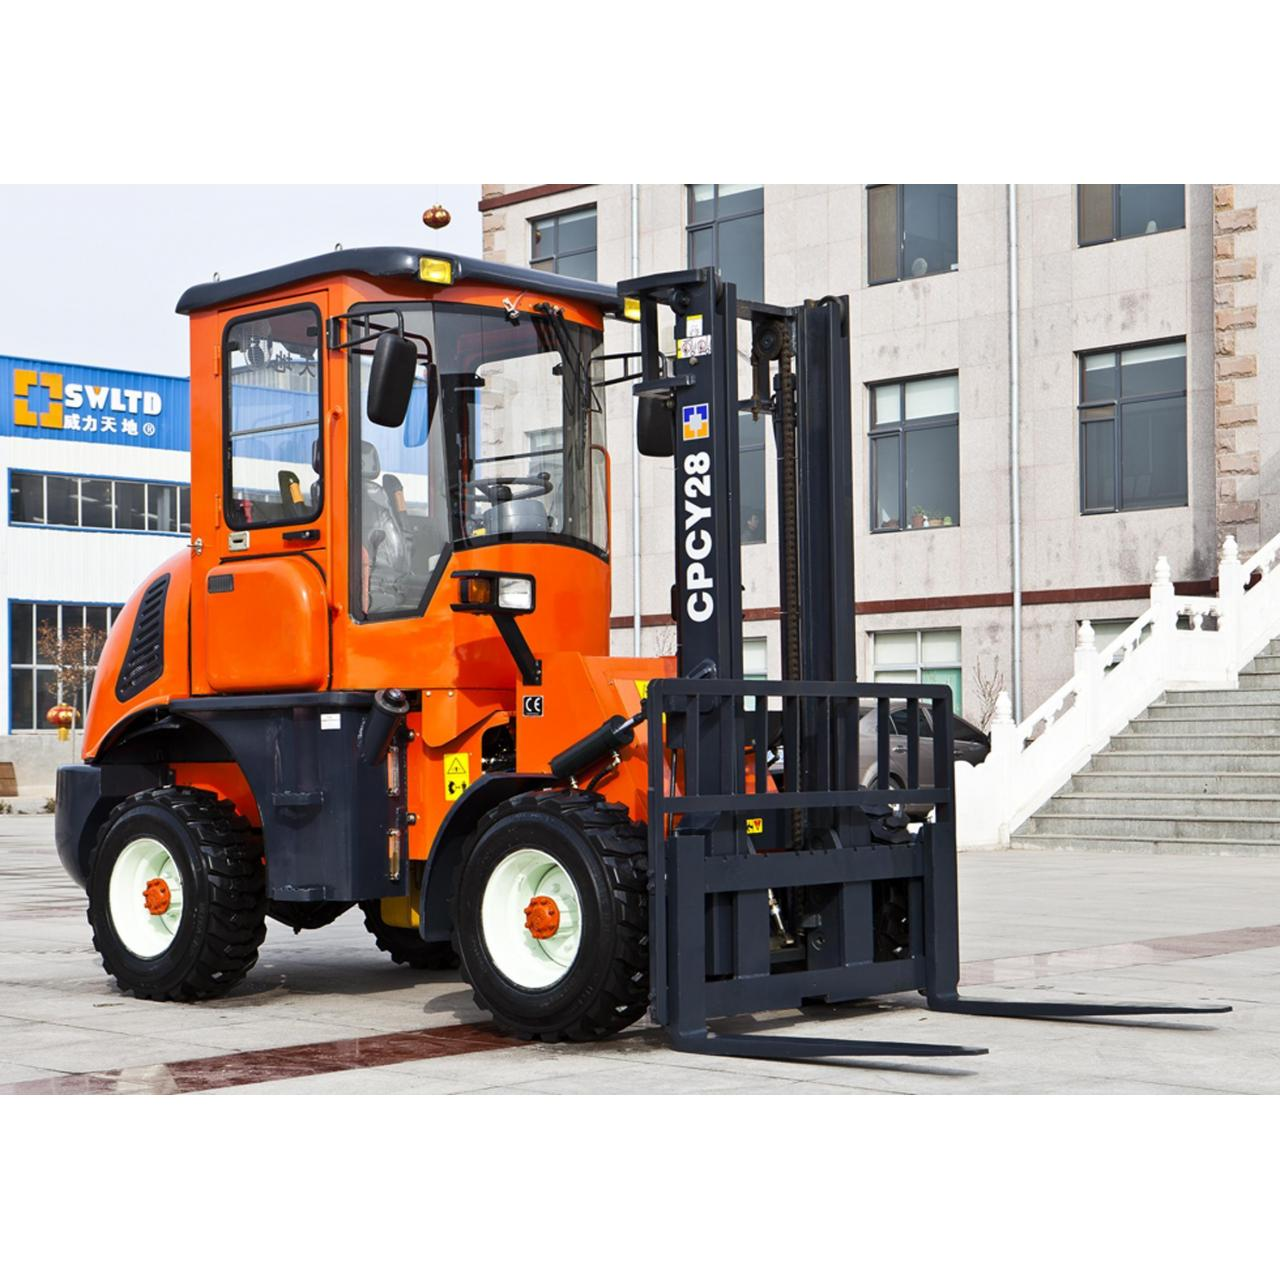 Loader(30) CPCY28 rough terrain forklift Manufactures